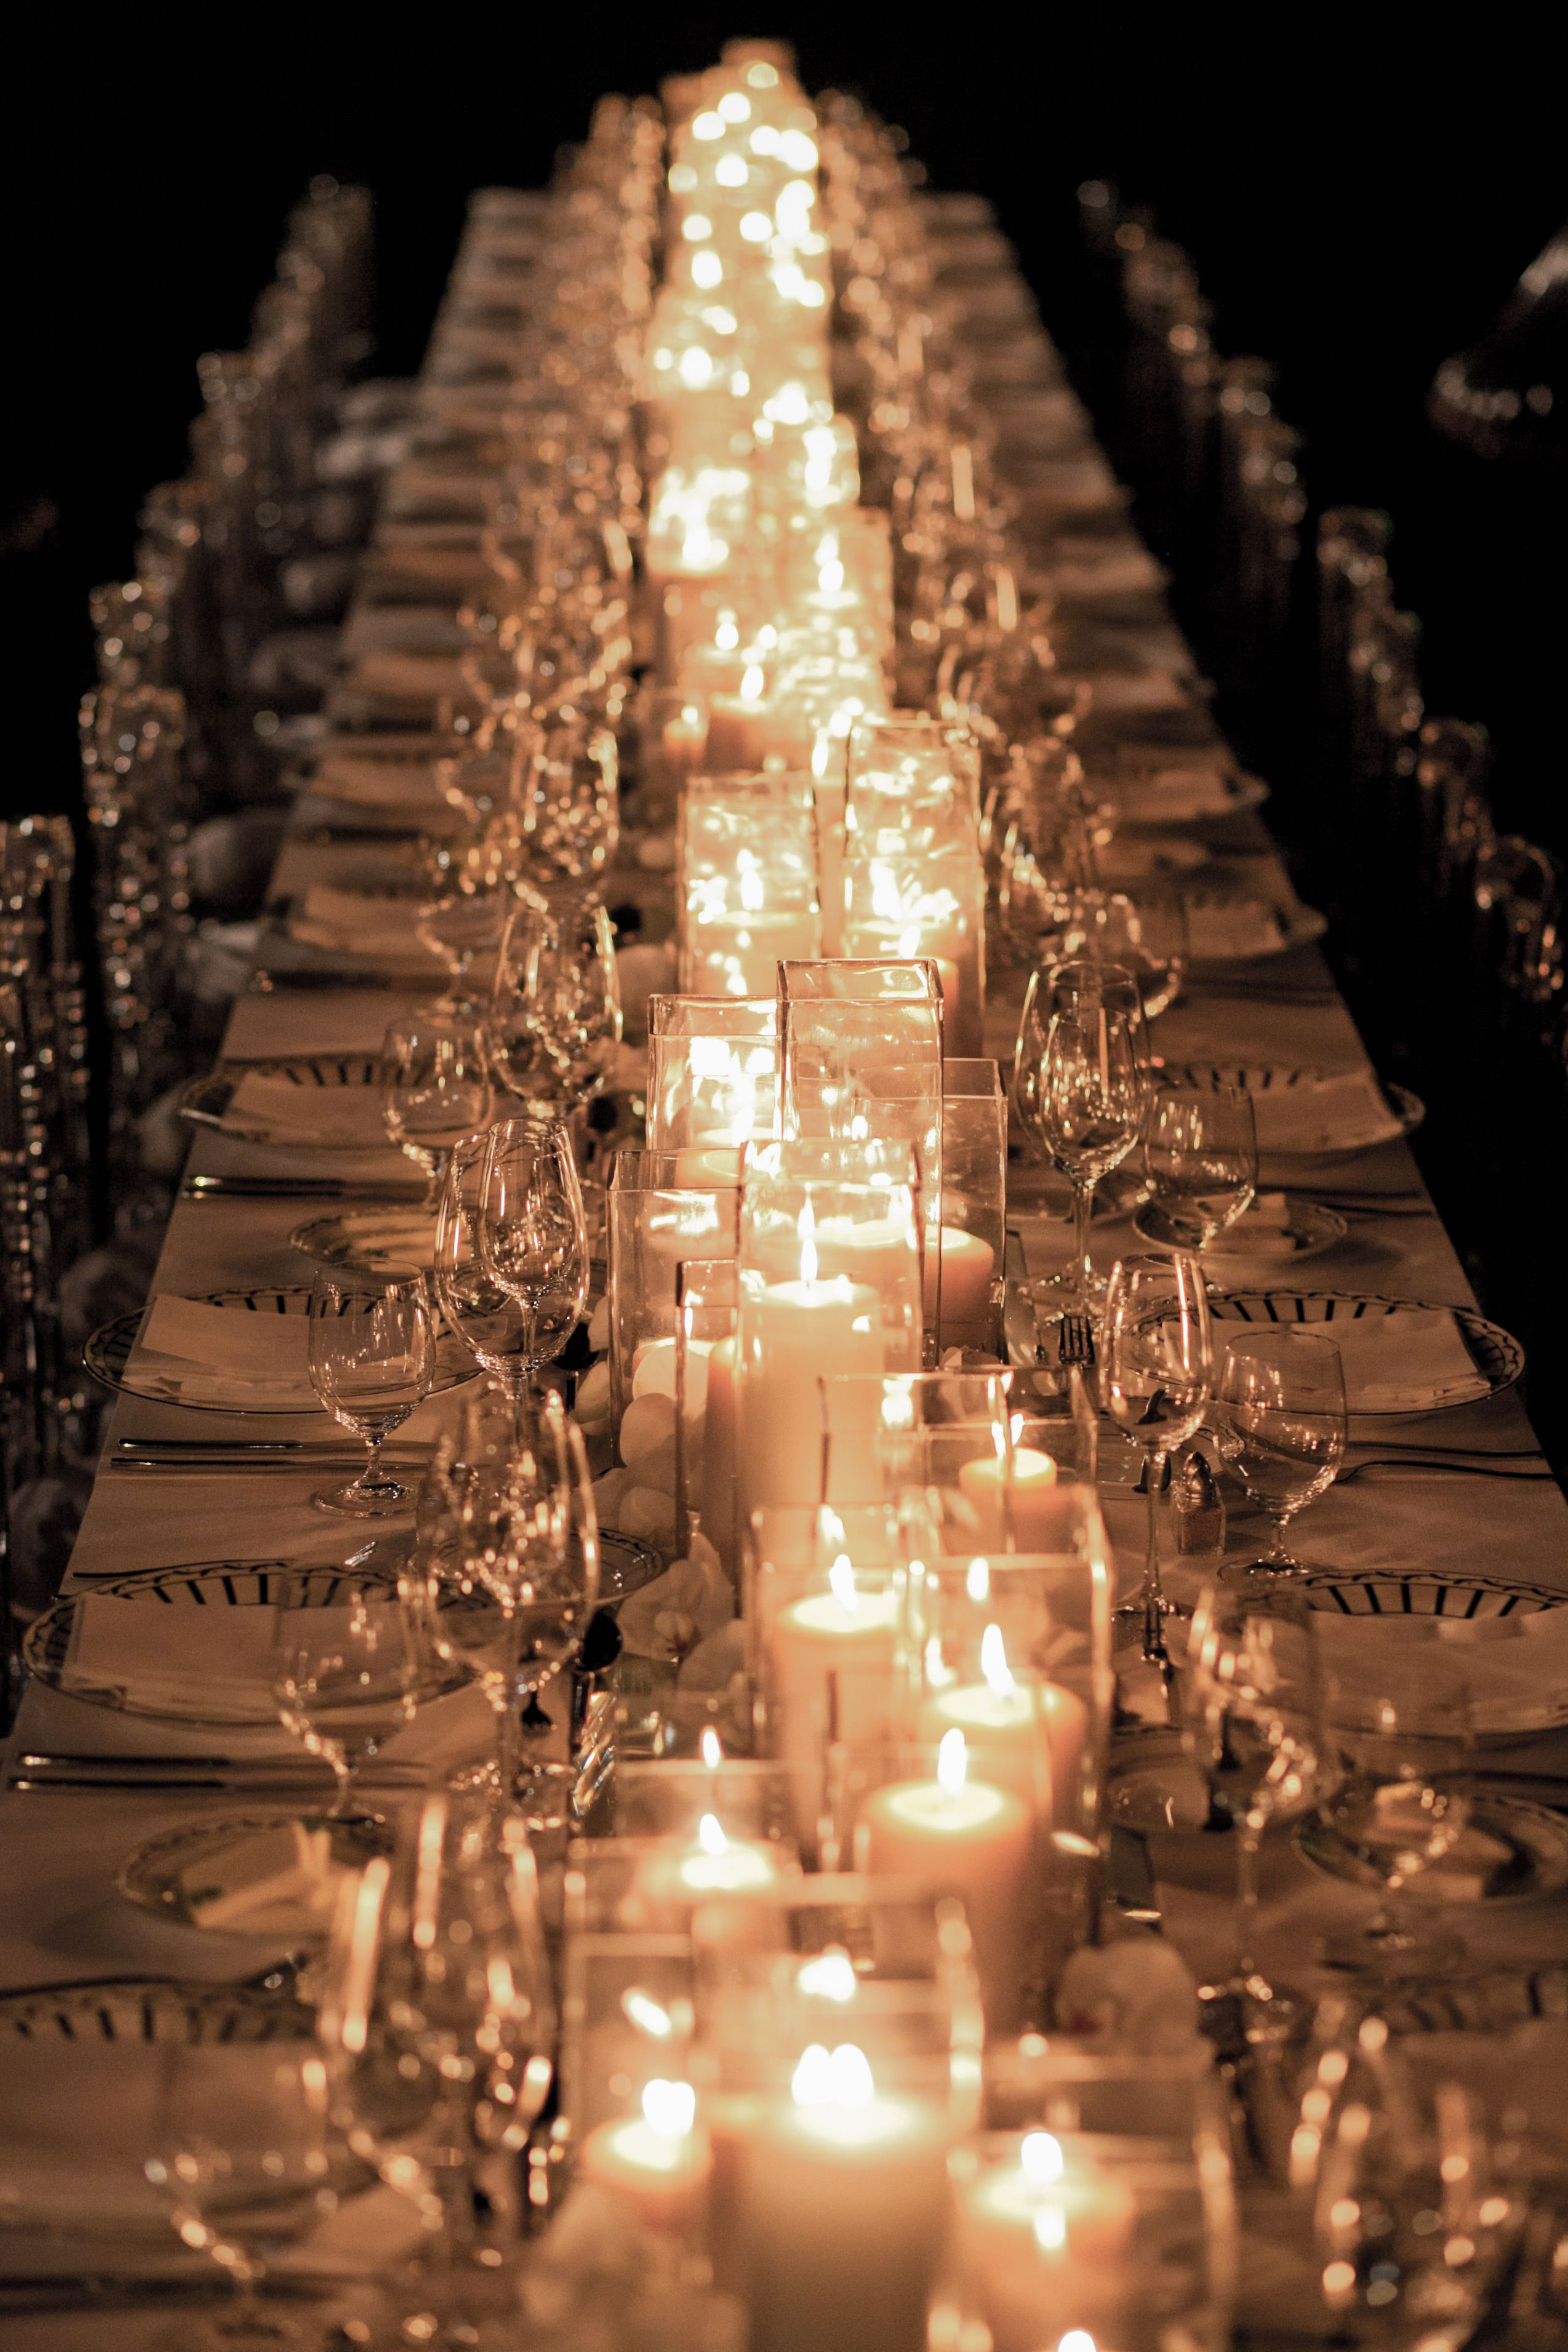 Candle light dinner table for two - Some Of The Tables Will Be Pillar Candles In Vases At Varied Heights And Votives Creating